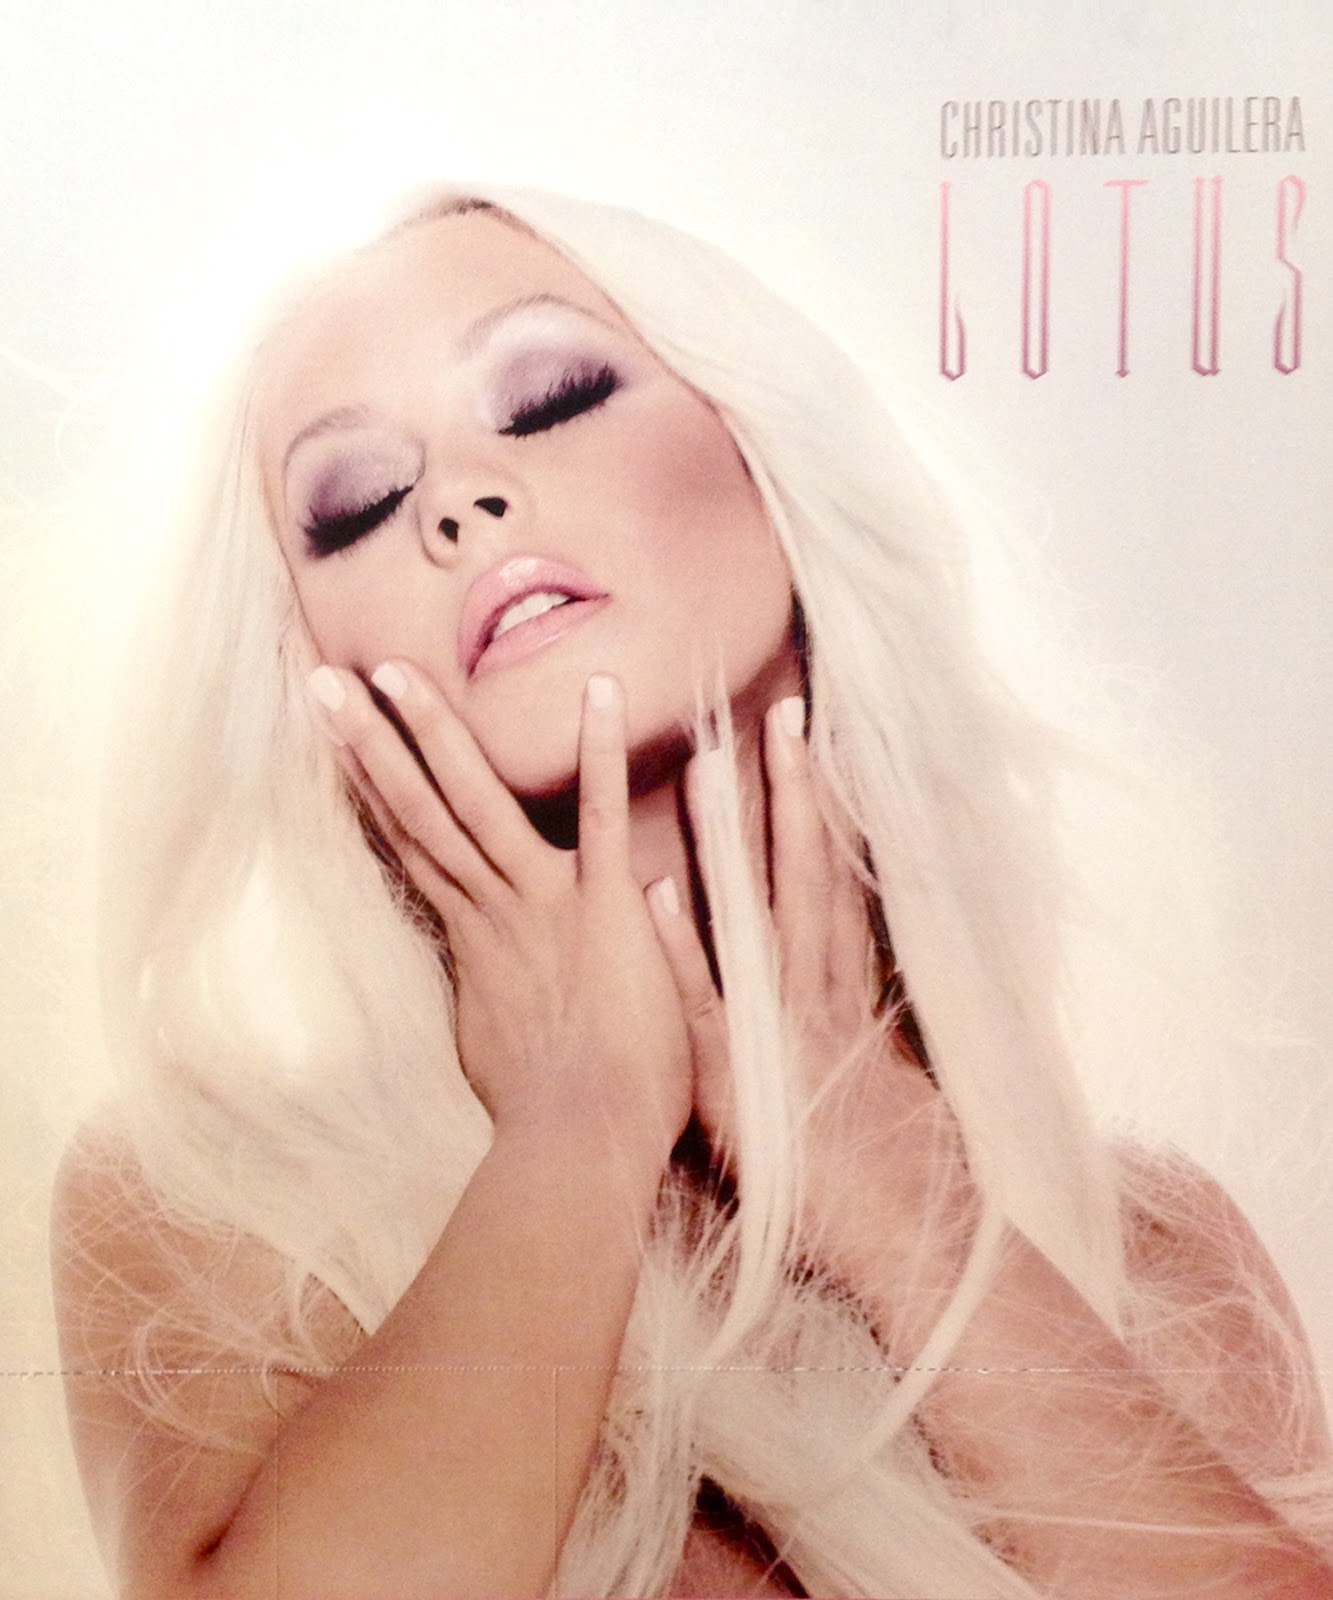 http://4.bp.blogspot.com/-mxPVK6pnOfs/UJBdHO2A8wI/AAAAAAAAUyU/nhFxDL-5AeI/s1600/christina-aguilera-lotus-never-before-seen-promo-photo-2012.jpg